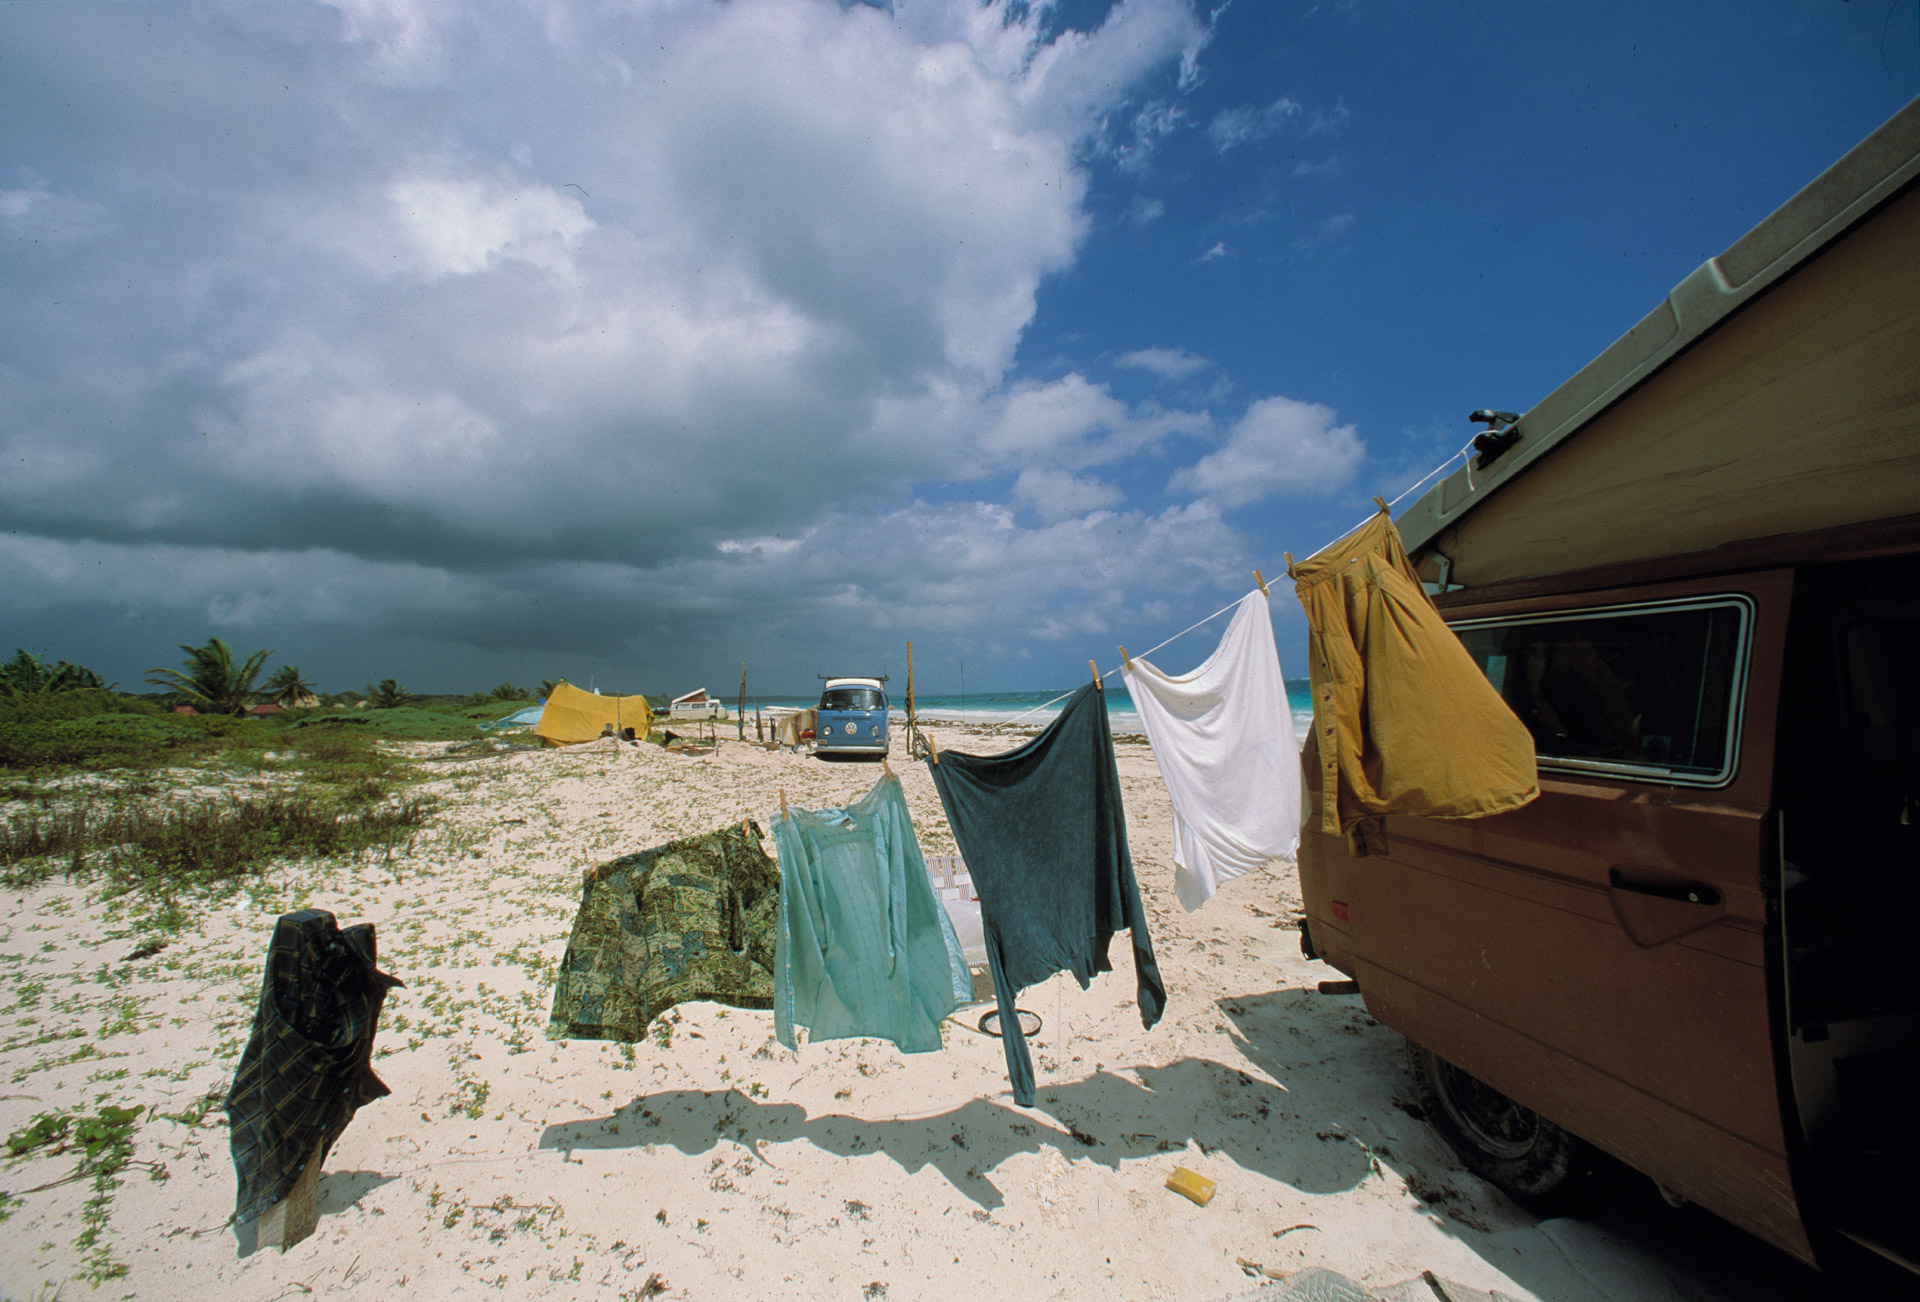 Laundry drying in the wind on the beach in Tulum, Mexico